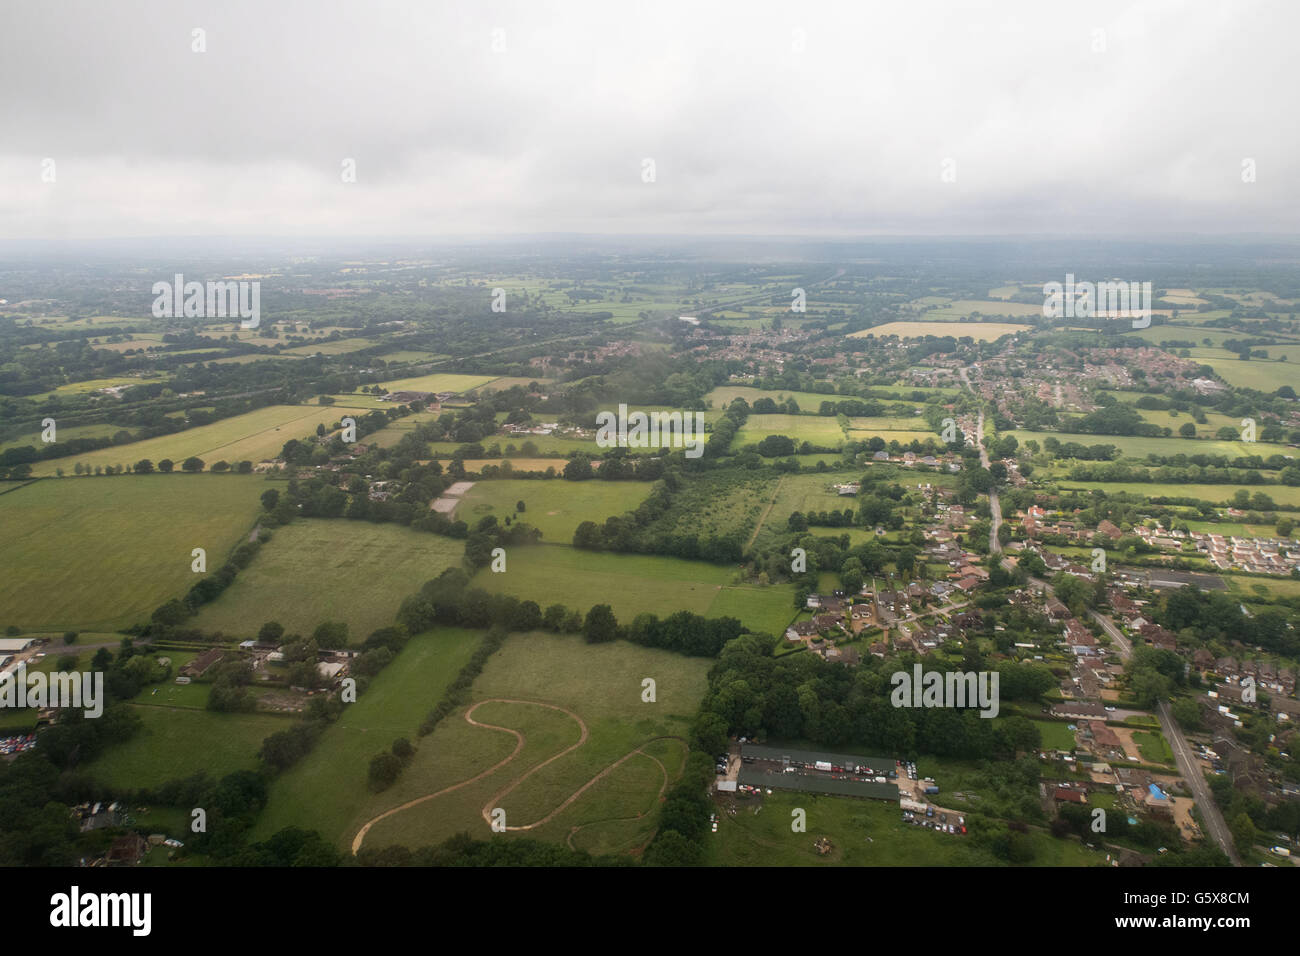 An aerial view of fields and houses on the approach to Gatwick airport, LondonStock Photo